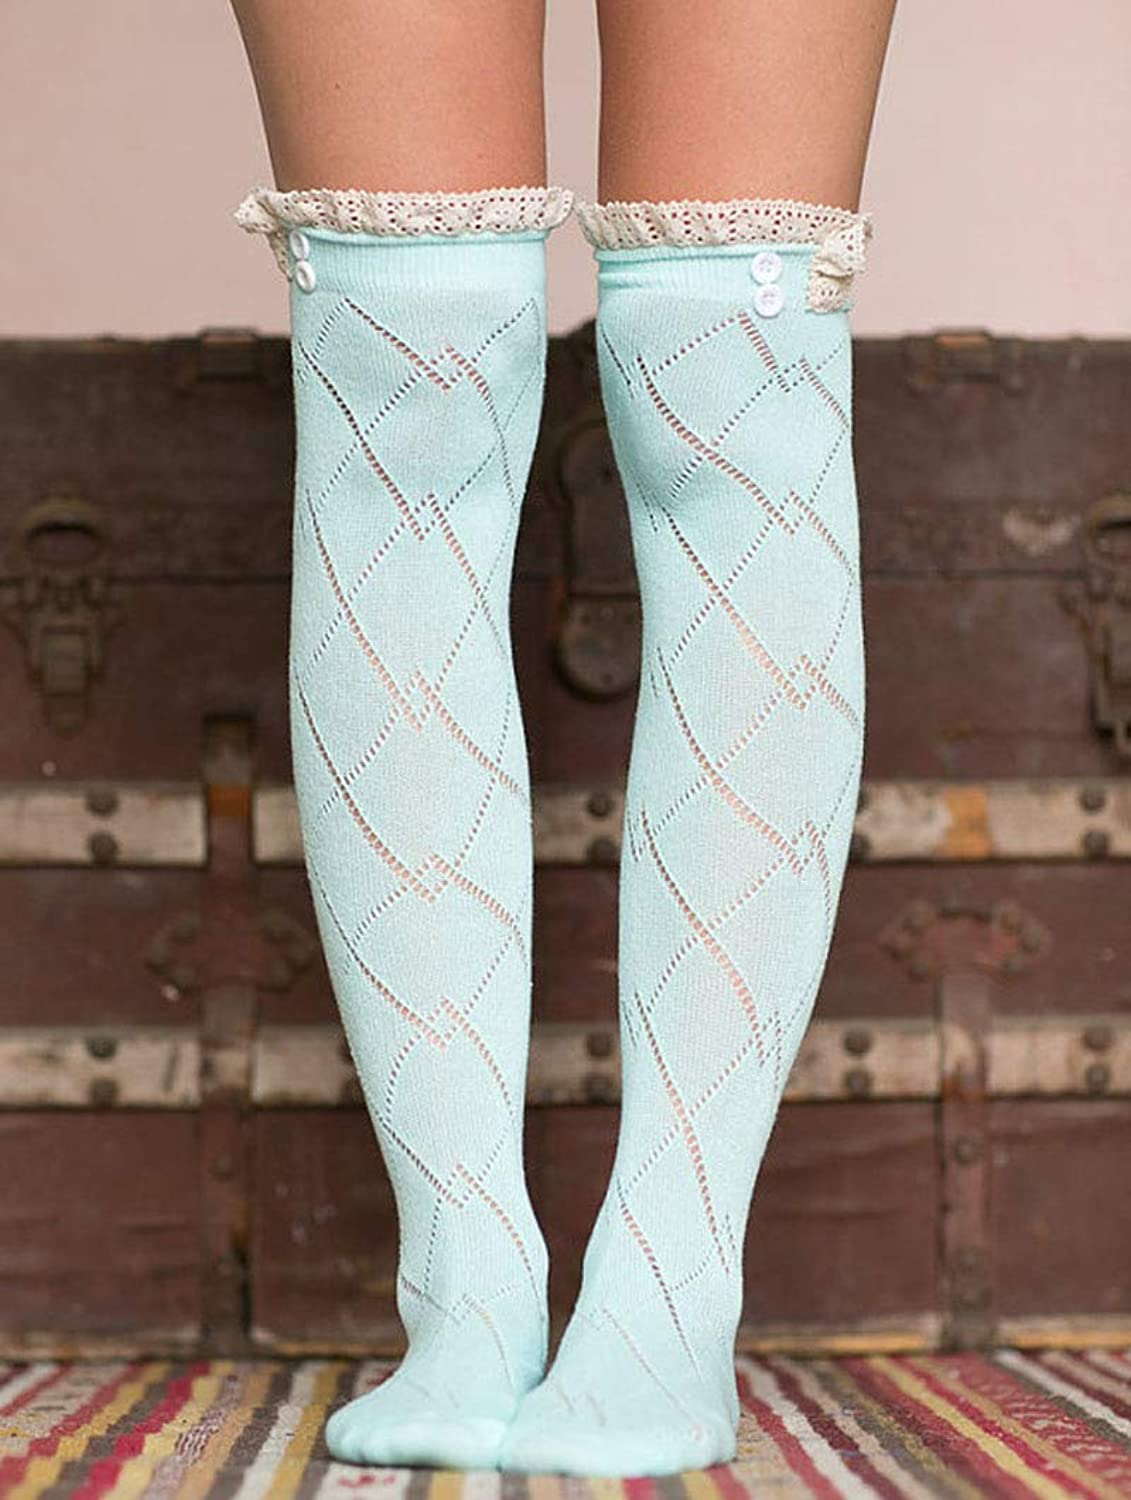 Comfortable Arm Warmer Leg Stocking Autumn and Winter Double Buckle lace Large Rhomboid Stockings Boots Set Warm Fashion Female Over The Knee high Socks (color   Light blueee)